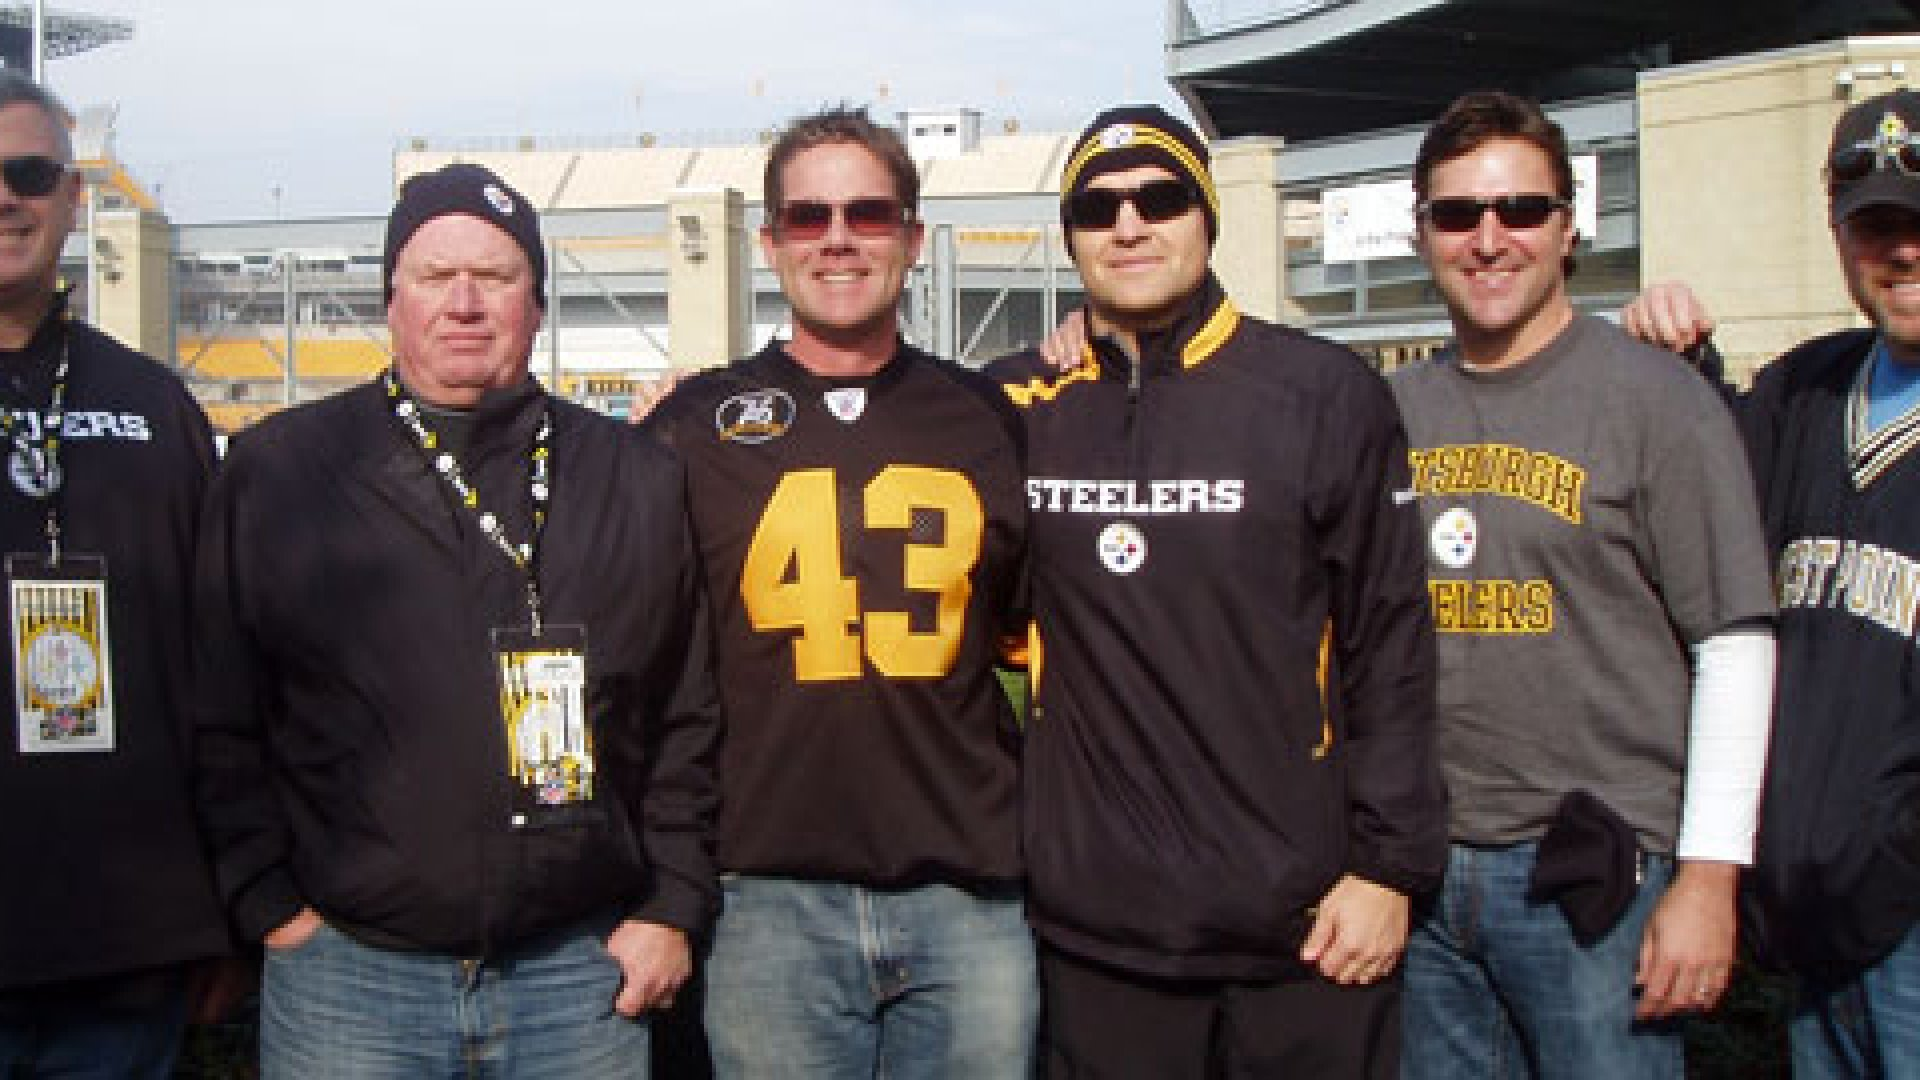 The Knight Point Systems leadership group at a Steelers game. Left to Right - Charles Randolph, Director of Operations, Bob Hogan, Business Development, Doug Duenkel, CEO, Justin Kuzemka, Director of Business Development, Keith McMeans,co-founder, and Robert Eisiminger, CEO, on the far right.